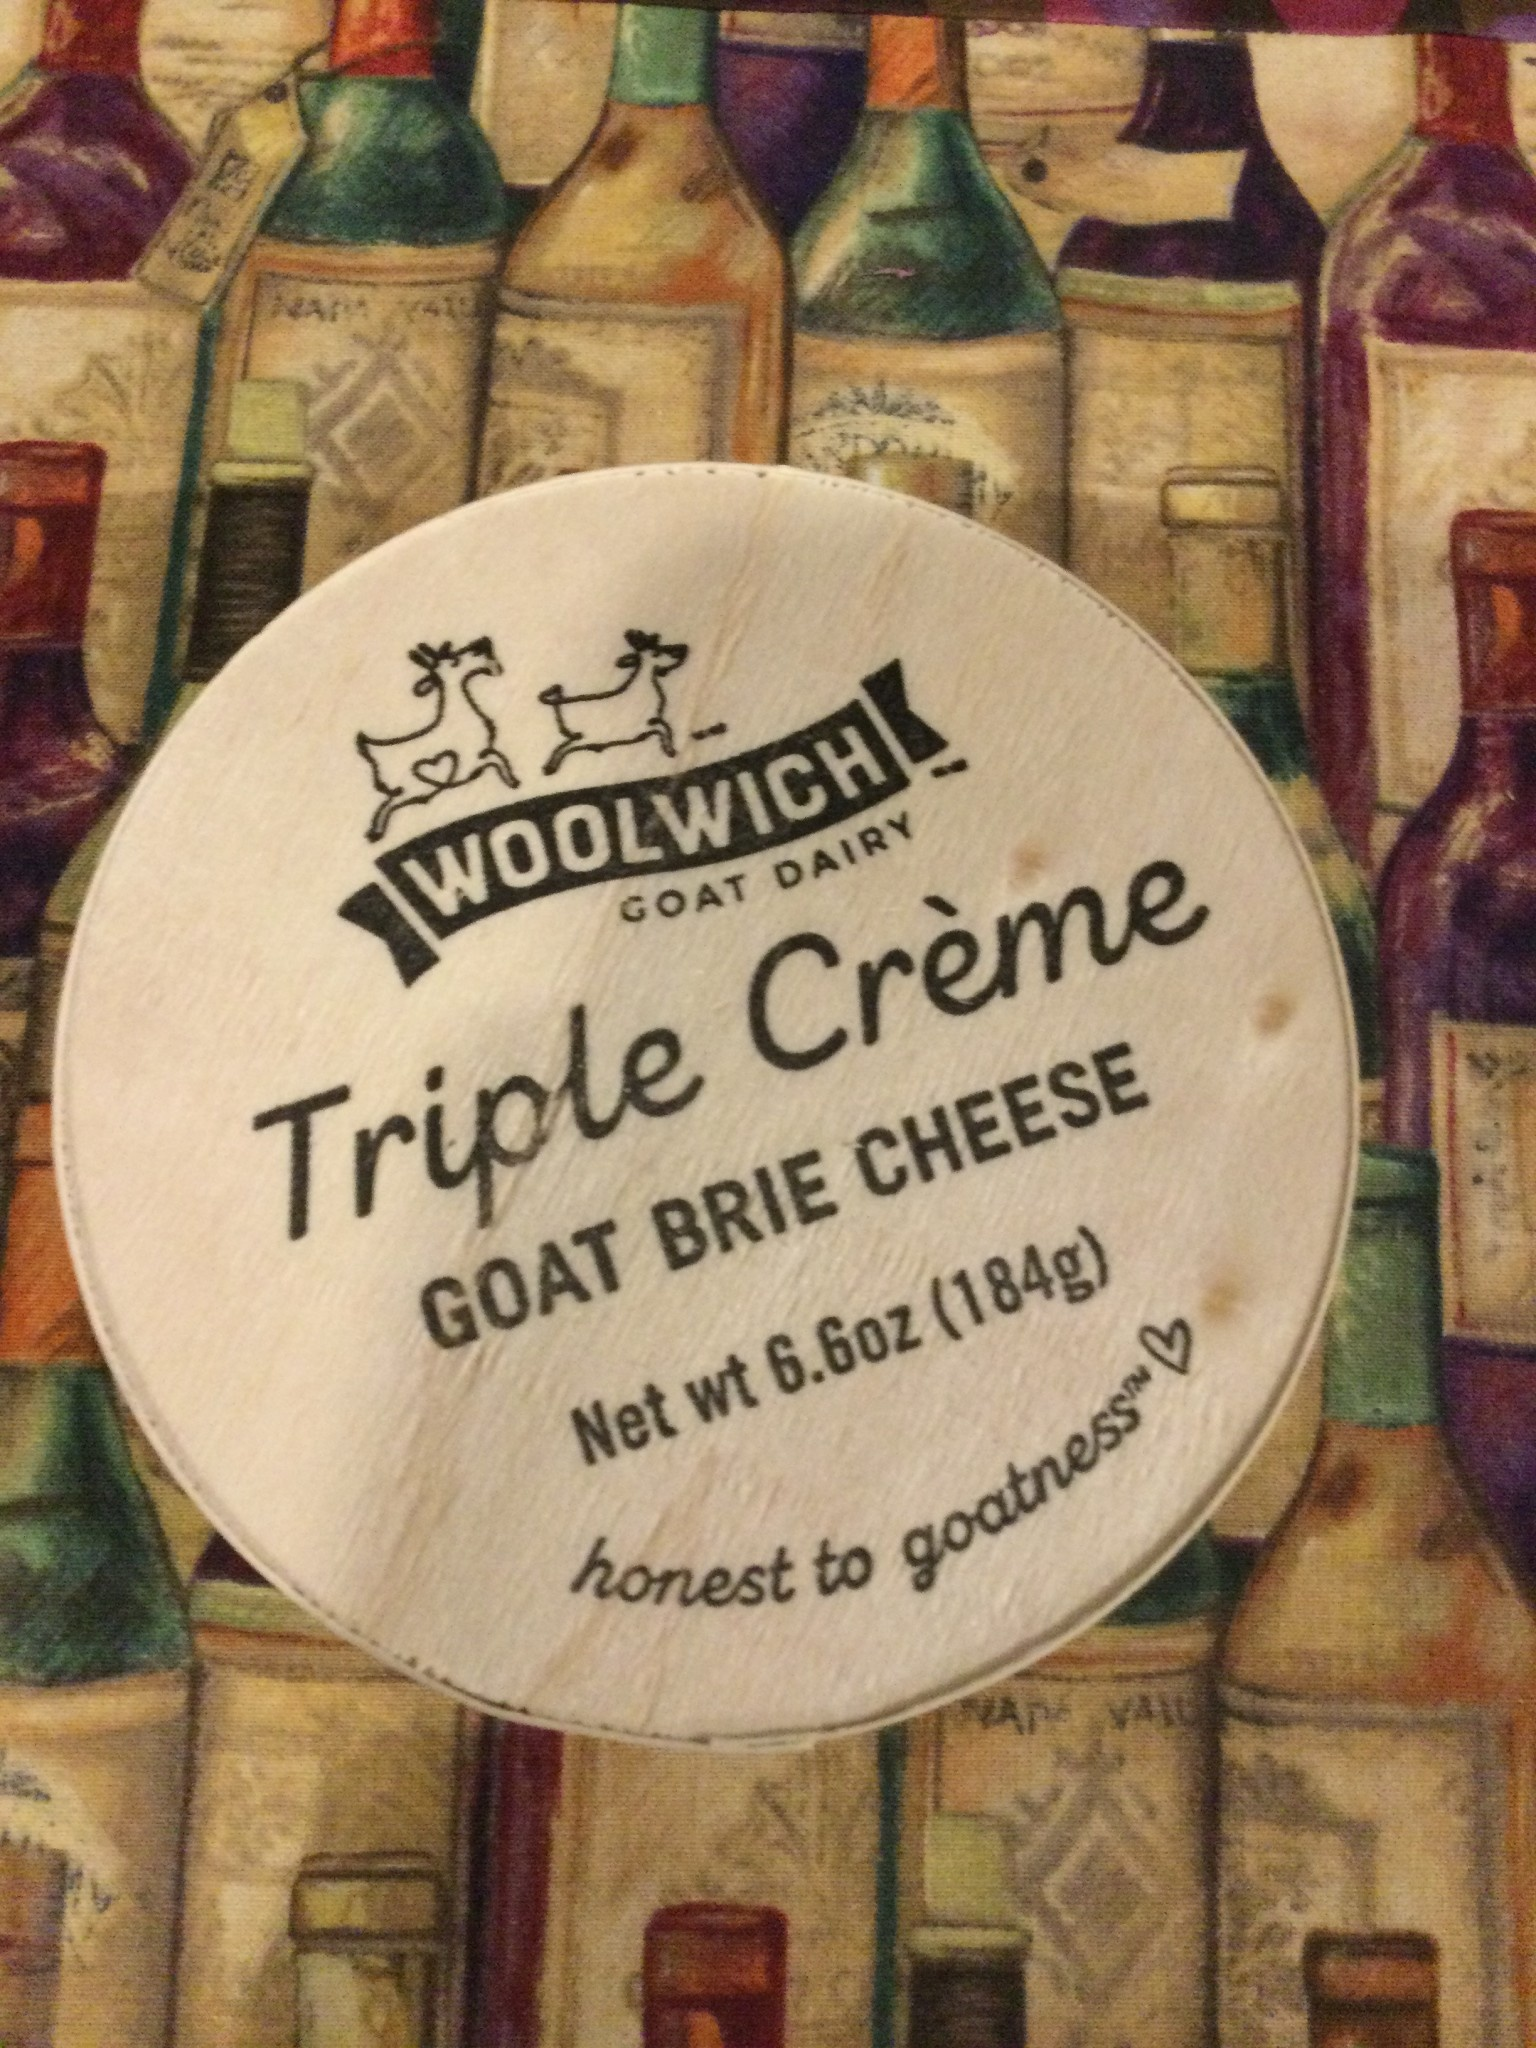 BRIE GOAT WOOLWICH